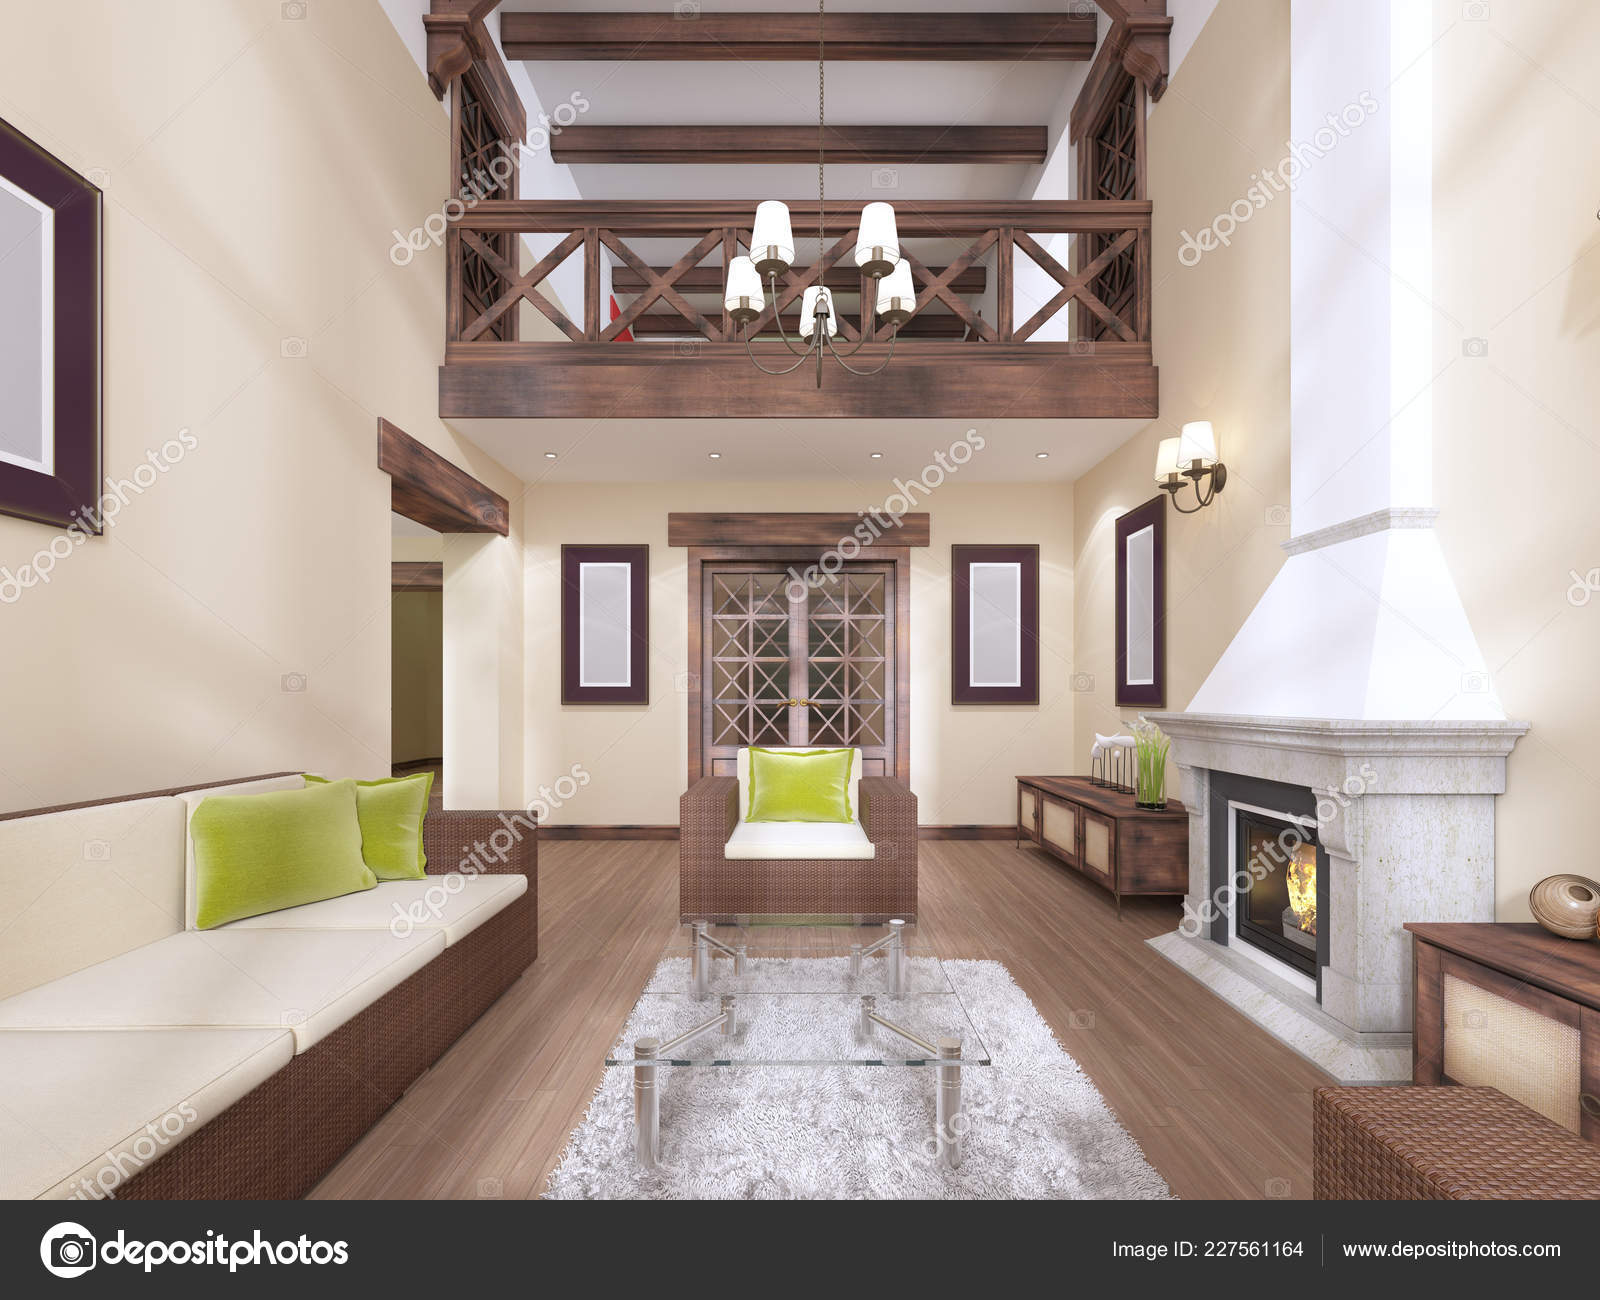 Interior Modern English Style Fireplace High Ceilings Wooden Beams Rendering Stock Photo C Kuprin33 227561164